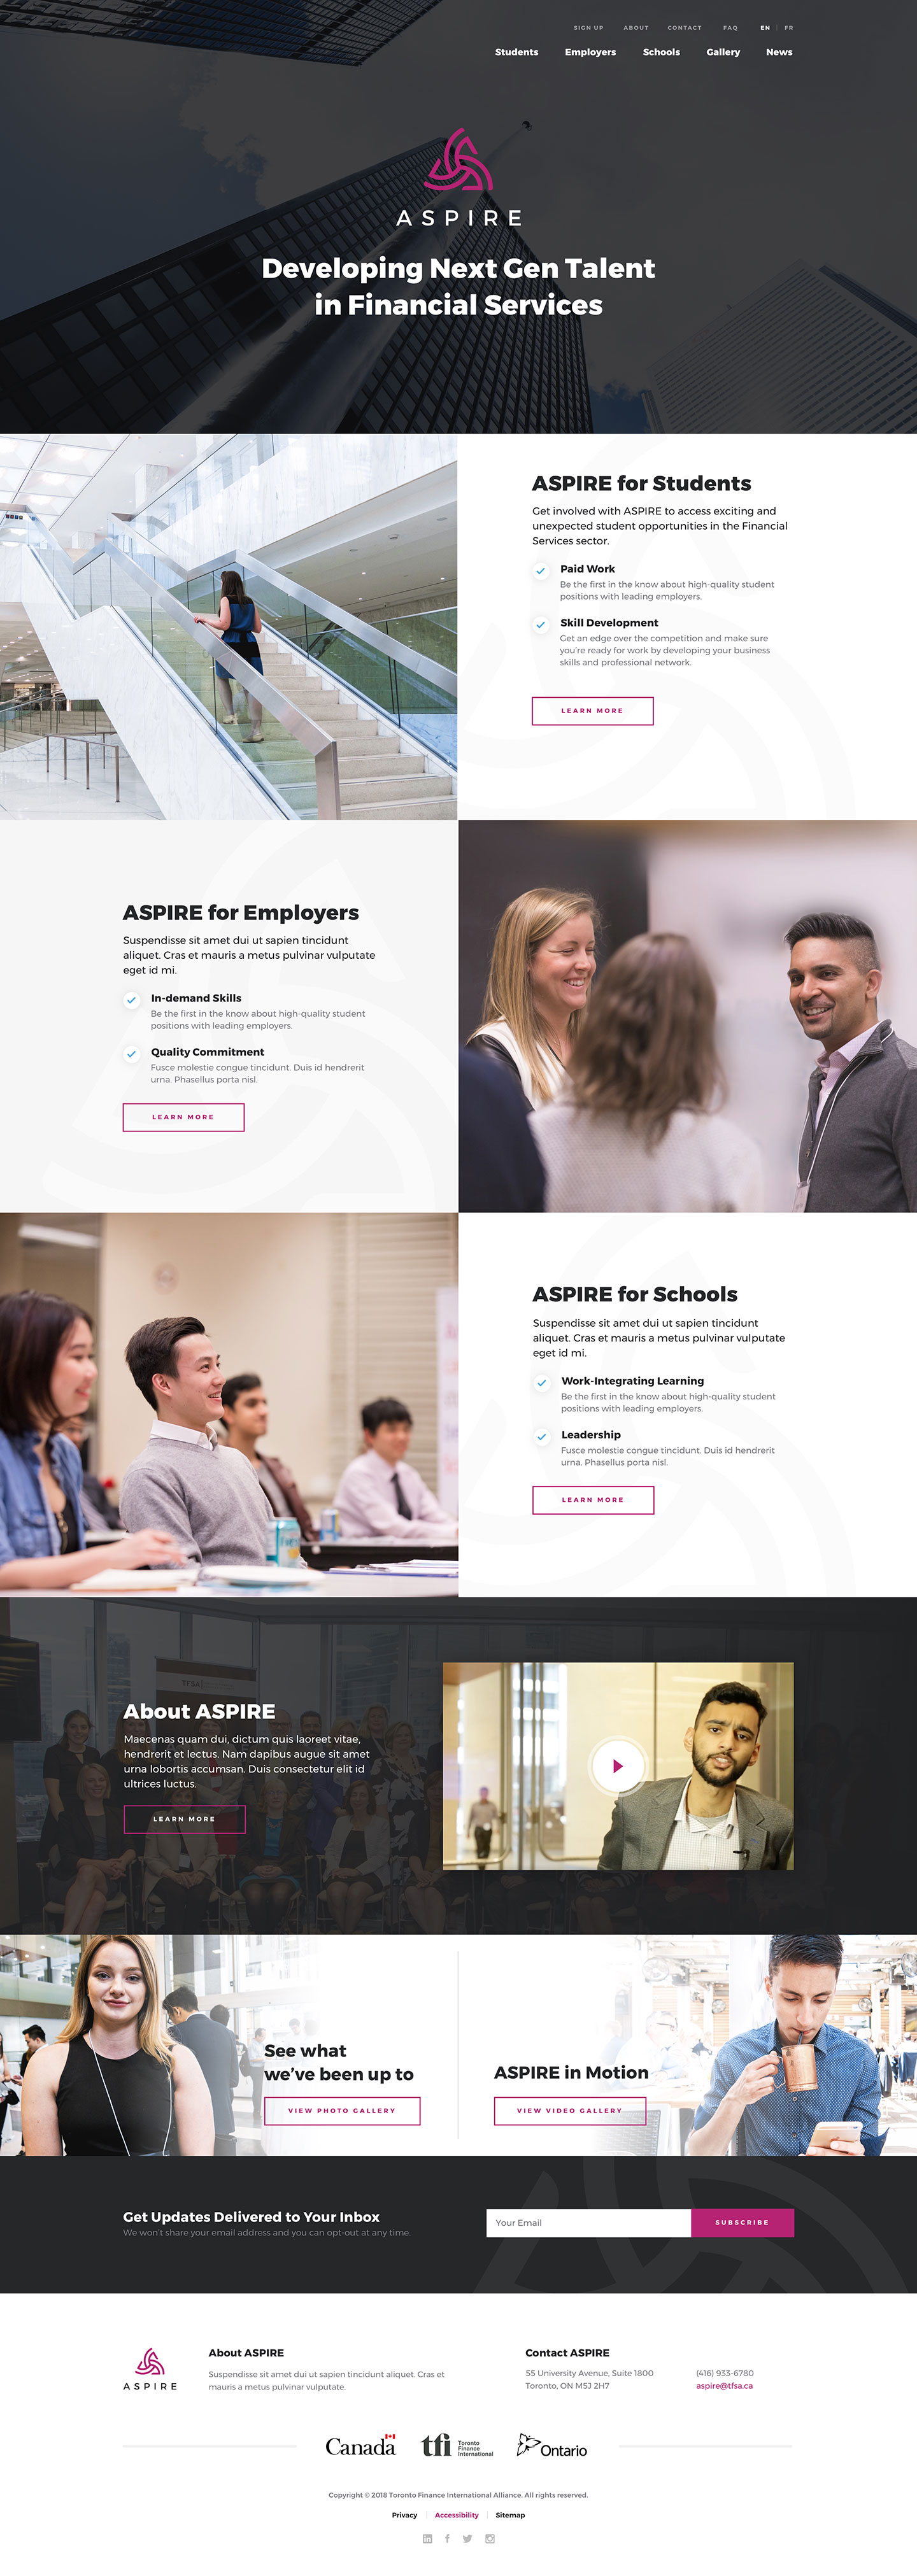 Custom WordPress Design for Toronto Financial International's ASPIRE Program